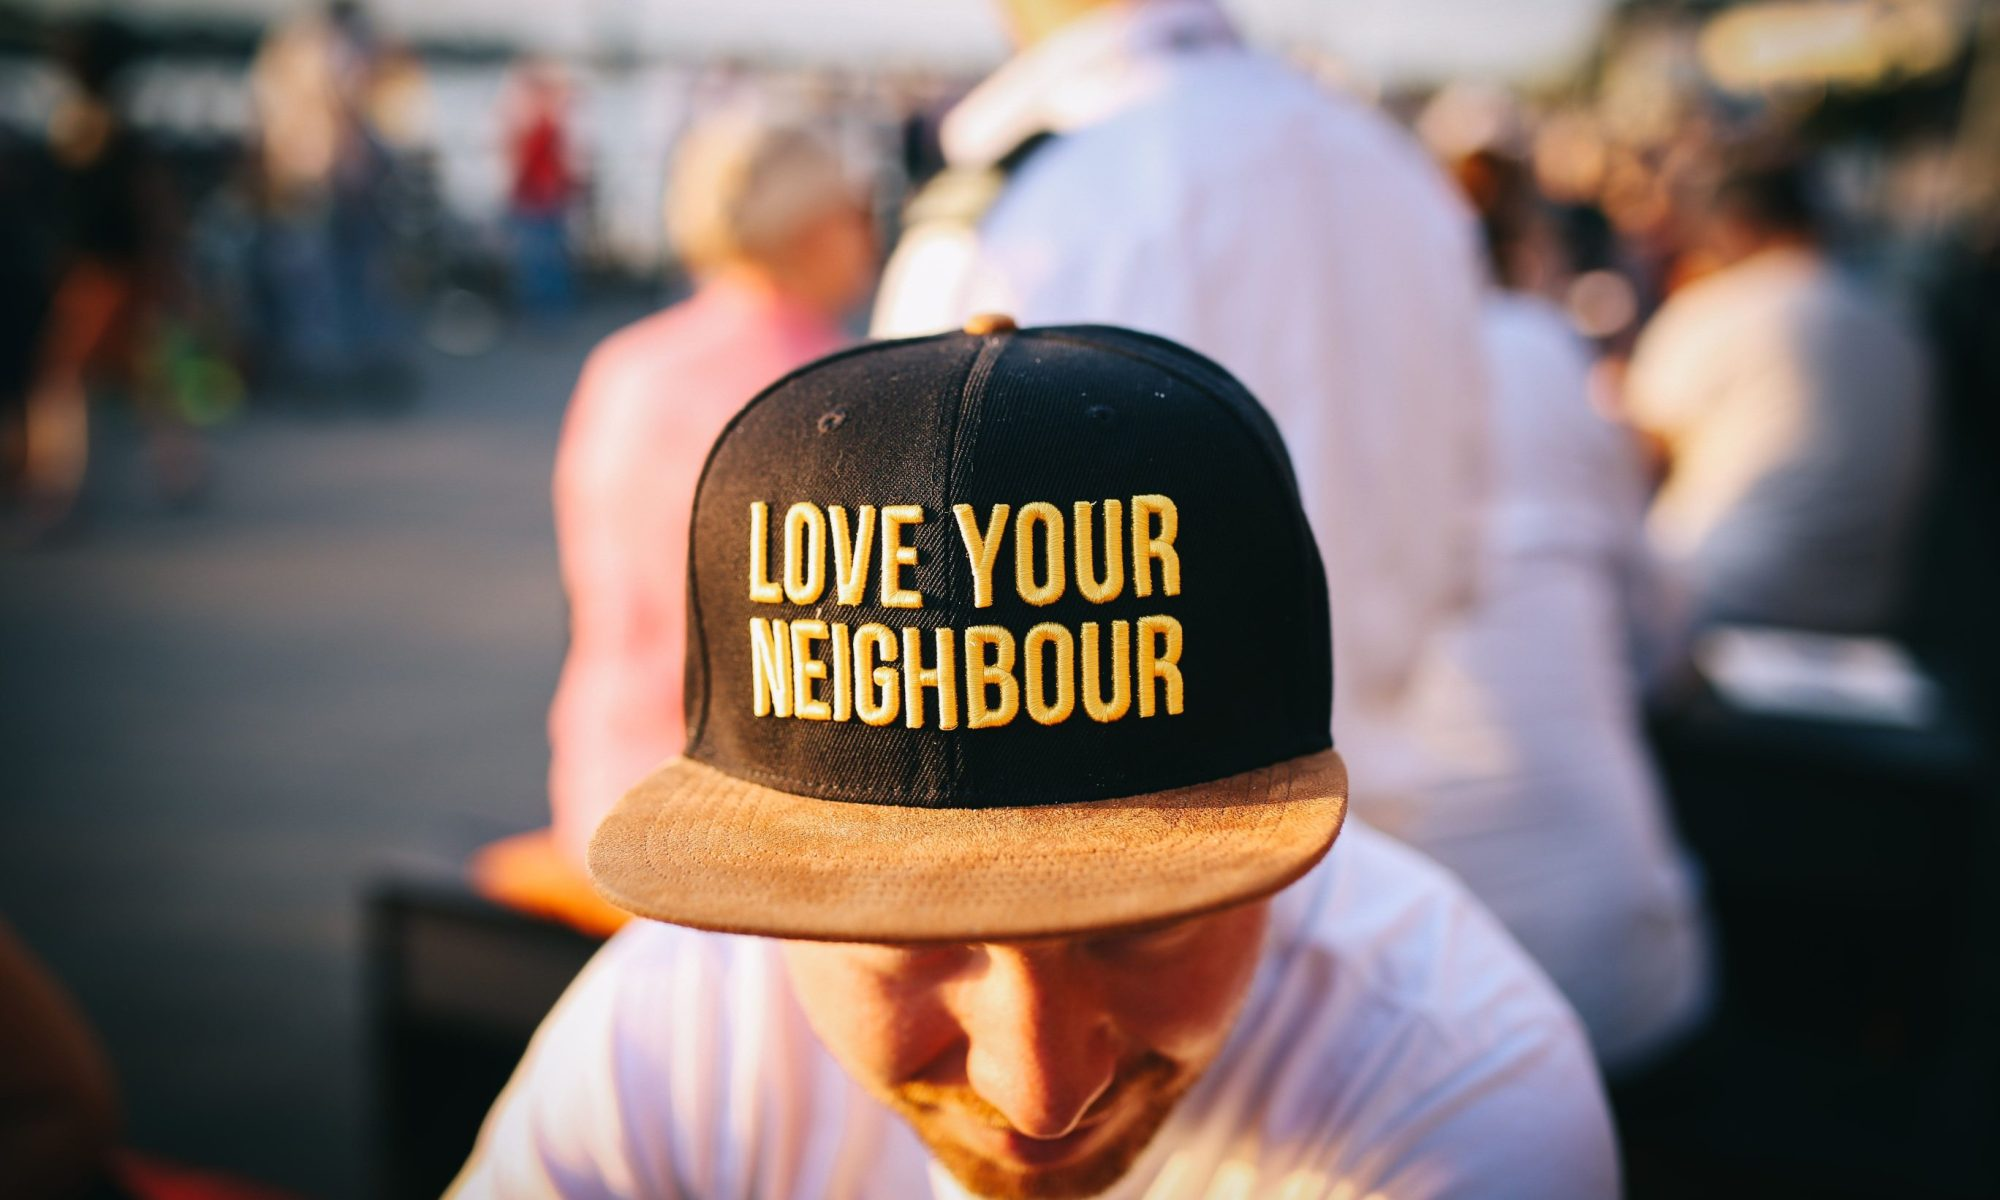 Man with cap showing Love Your Neighbour